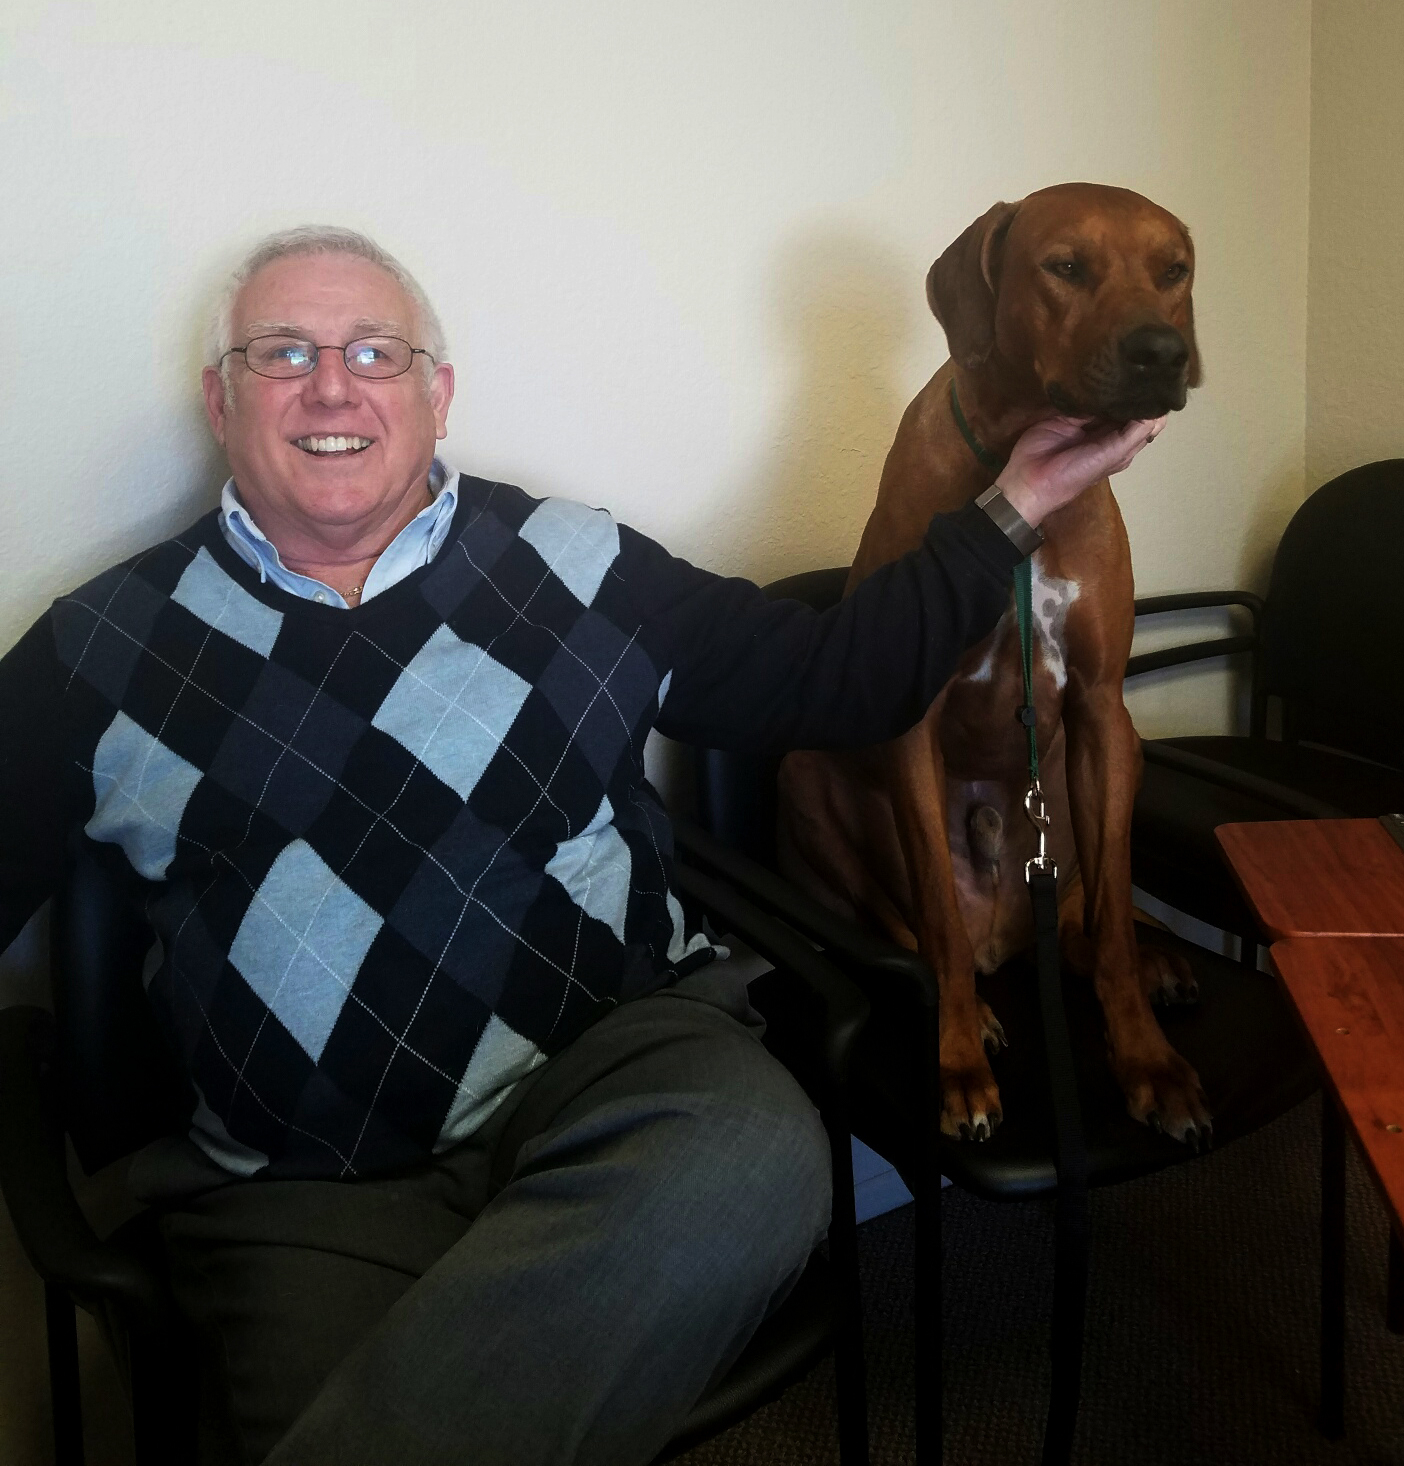 Large dog sitting with Dr. Ken Tudor, veterinarian who developed the Healthier Homemade nutrient formulas and custom recipes